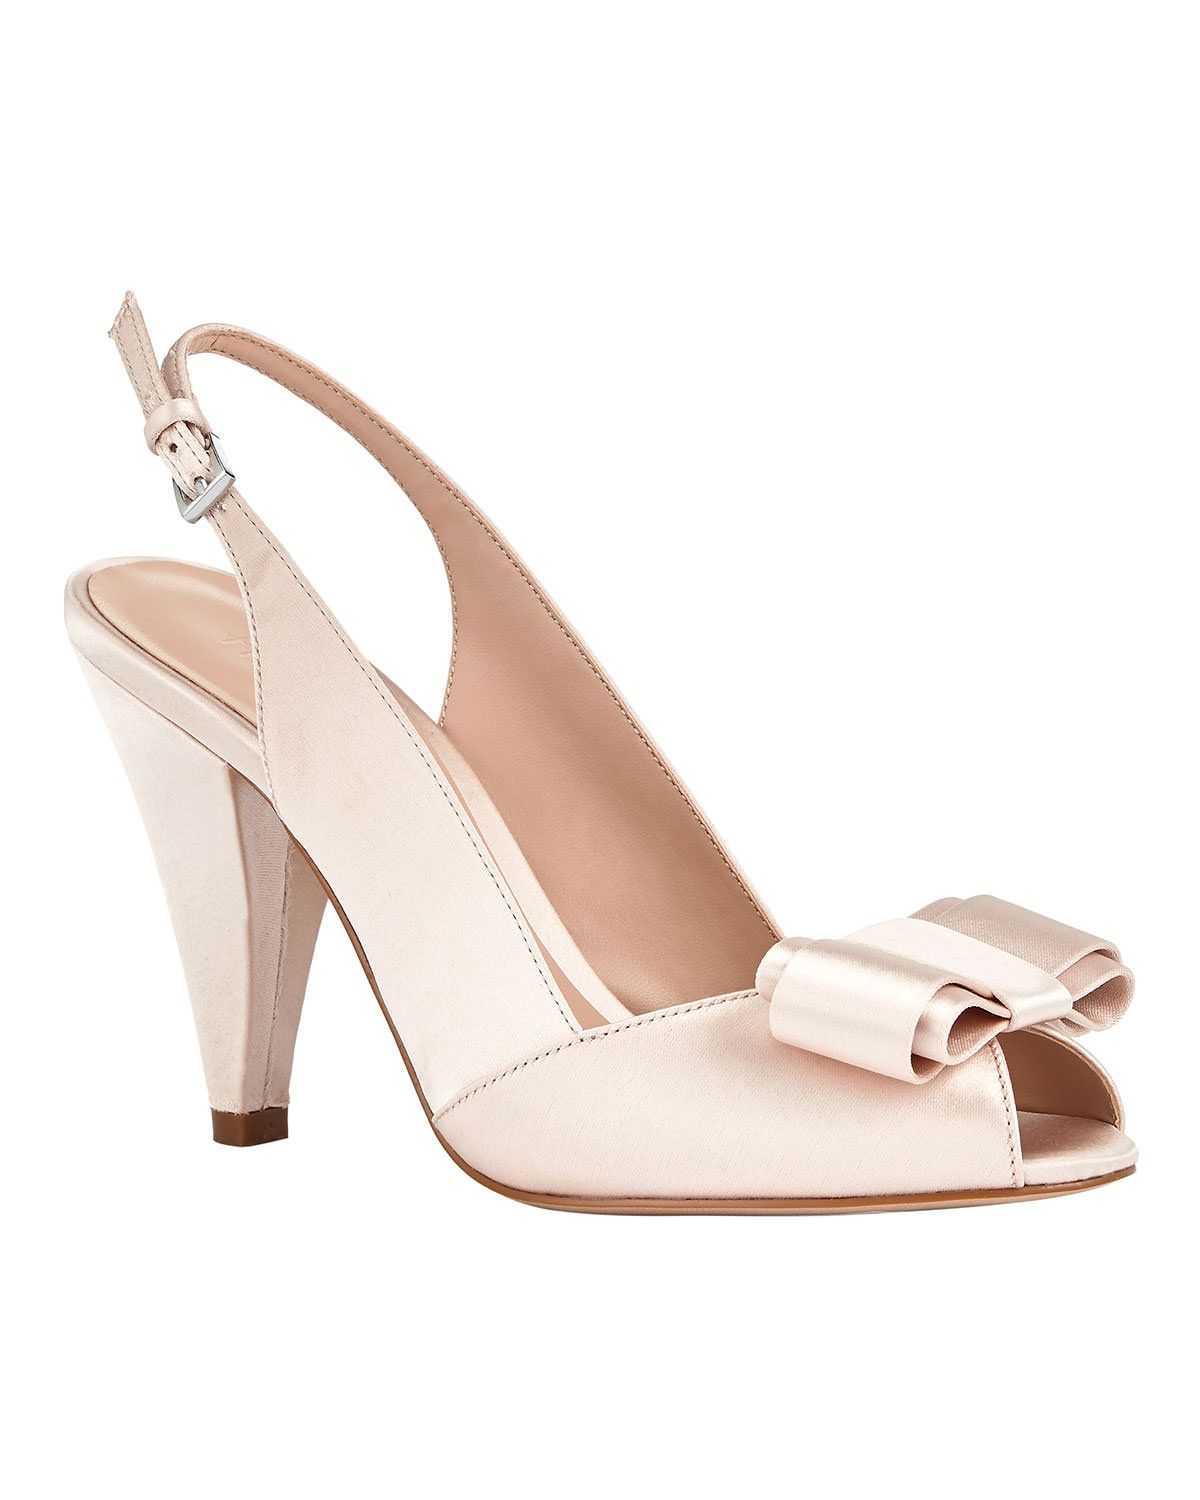 Phase Eight Belle Satin Peep Toe Shoes Pink  ad3014e62